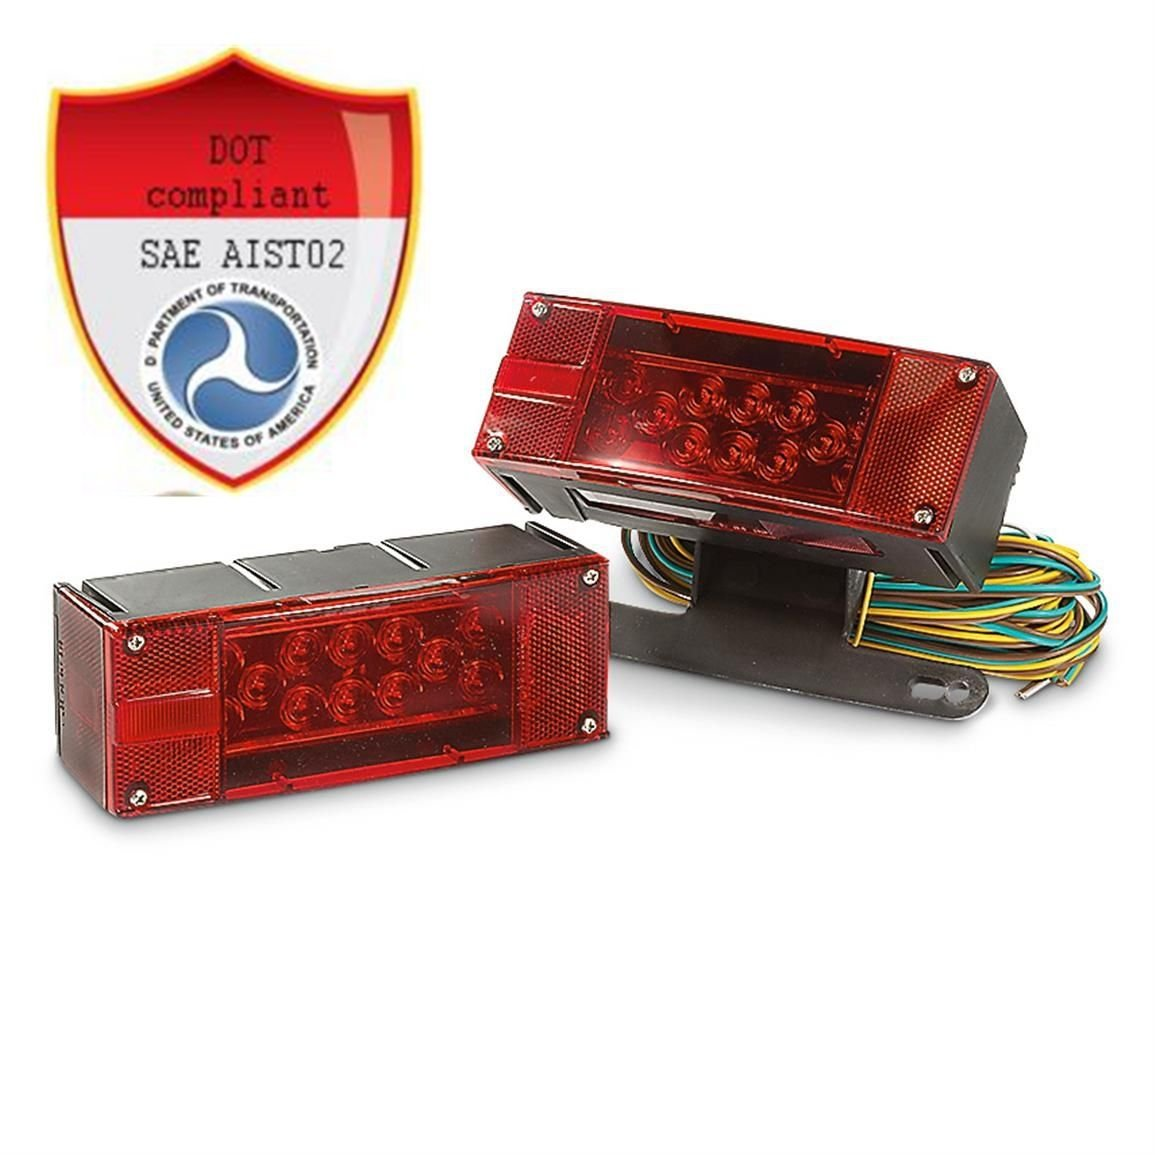 12V LED Submersible Trailer Light Kit Multi-Function leds DOT Compliant pair